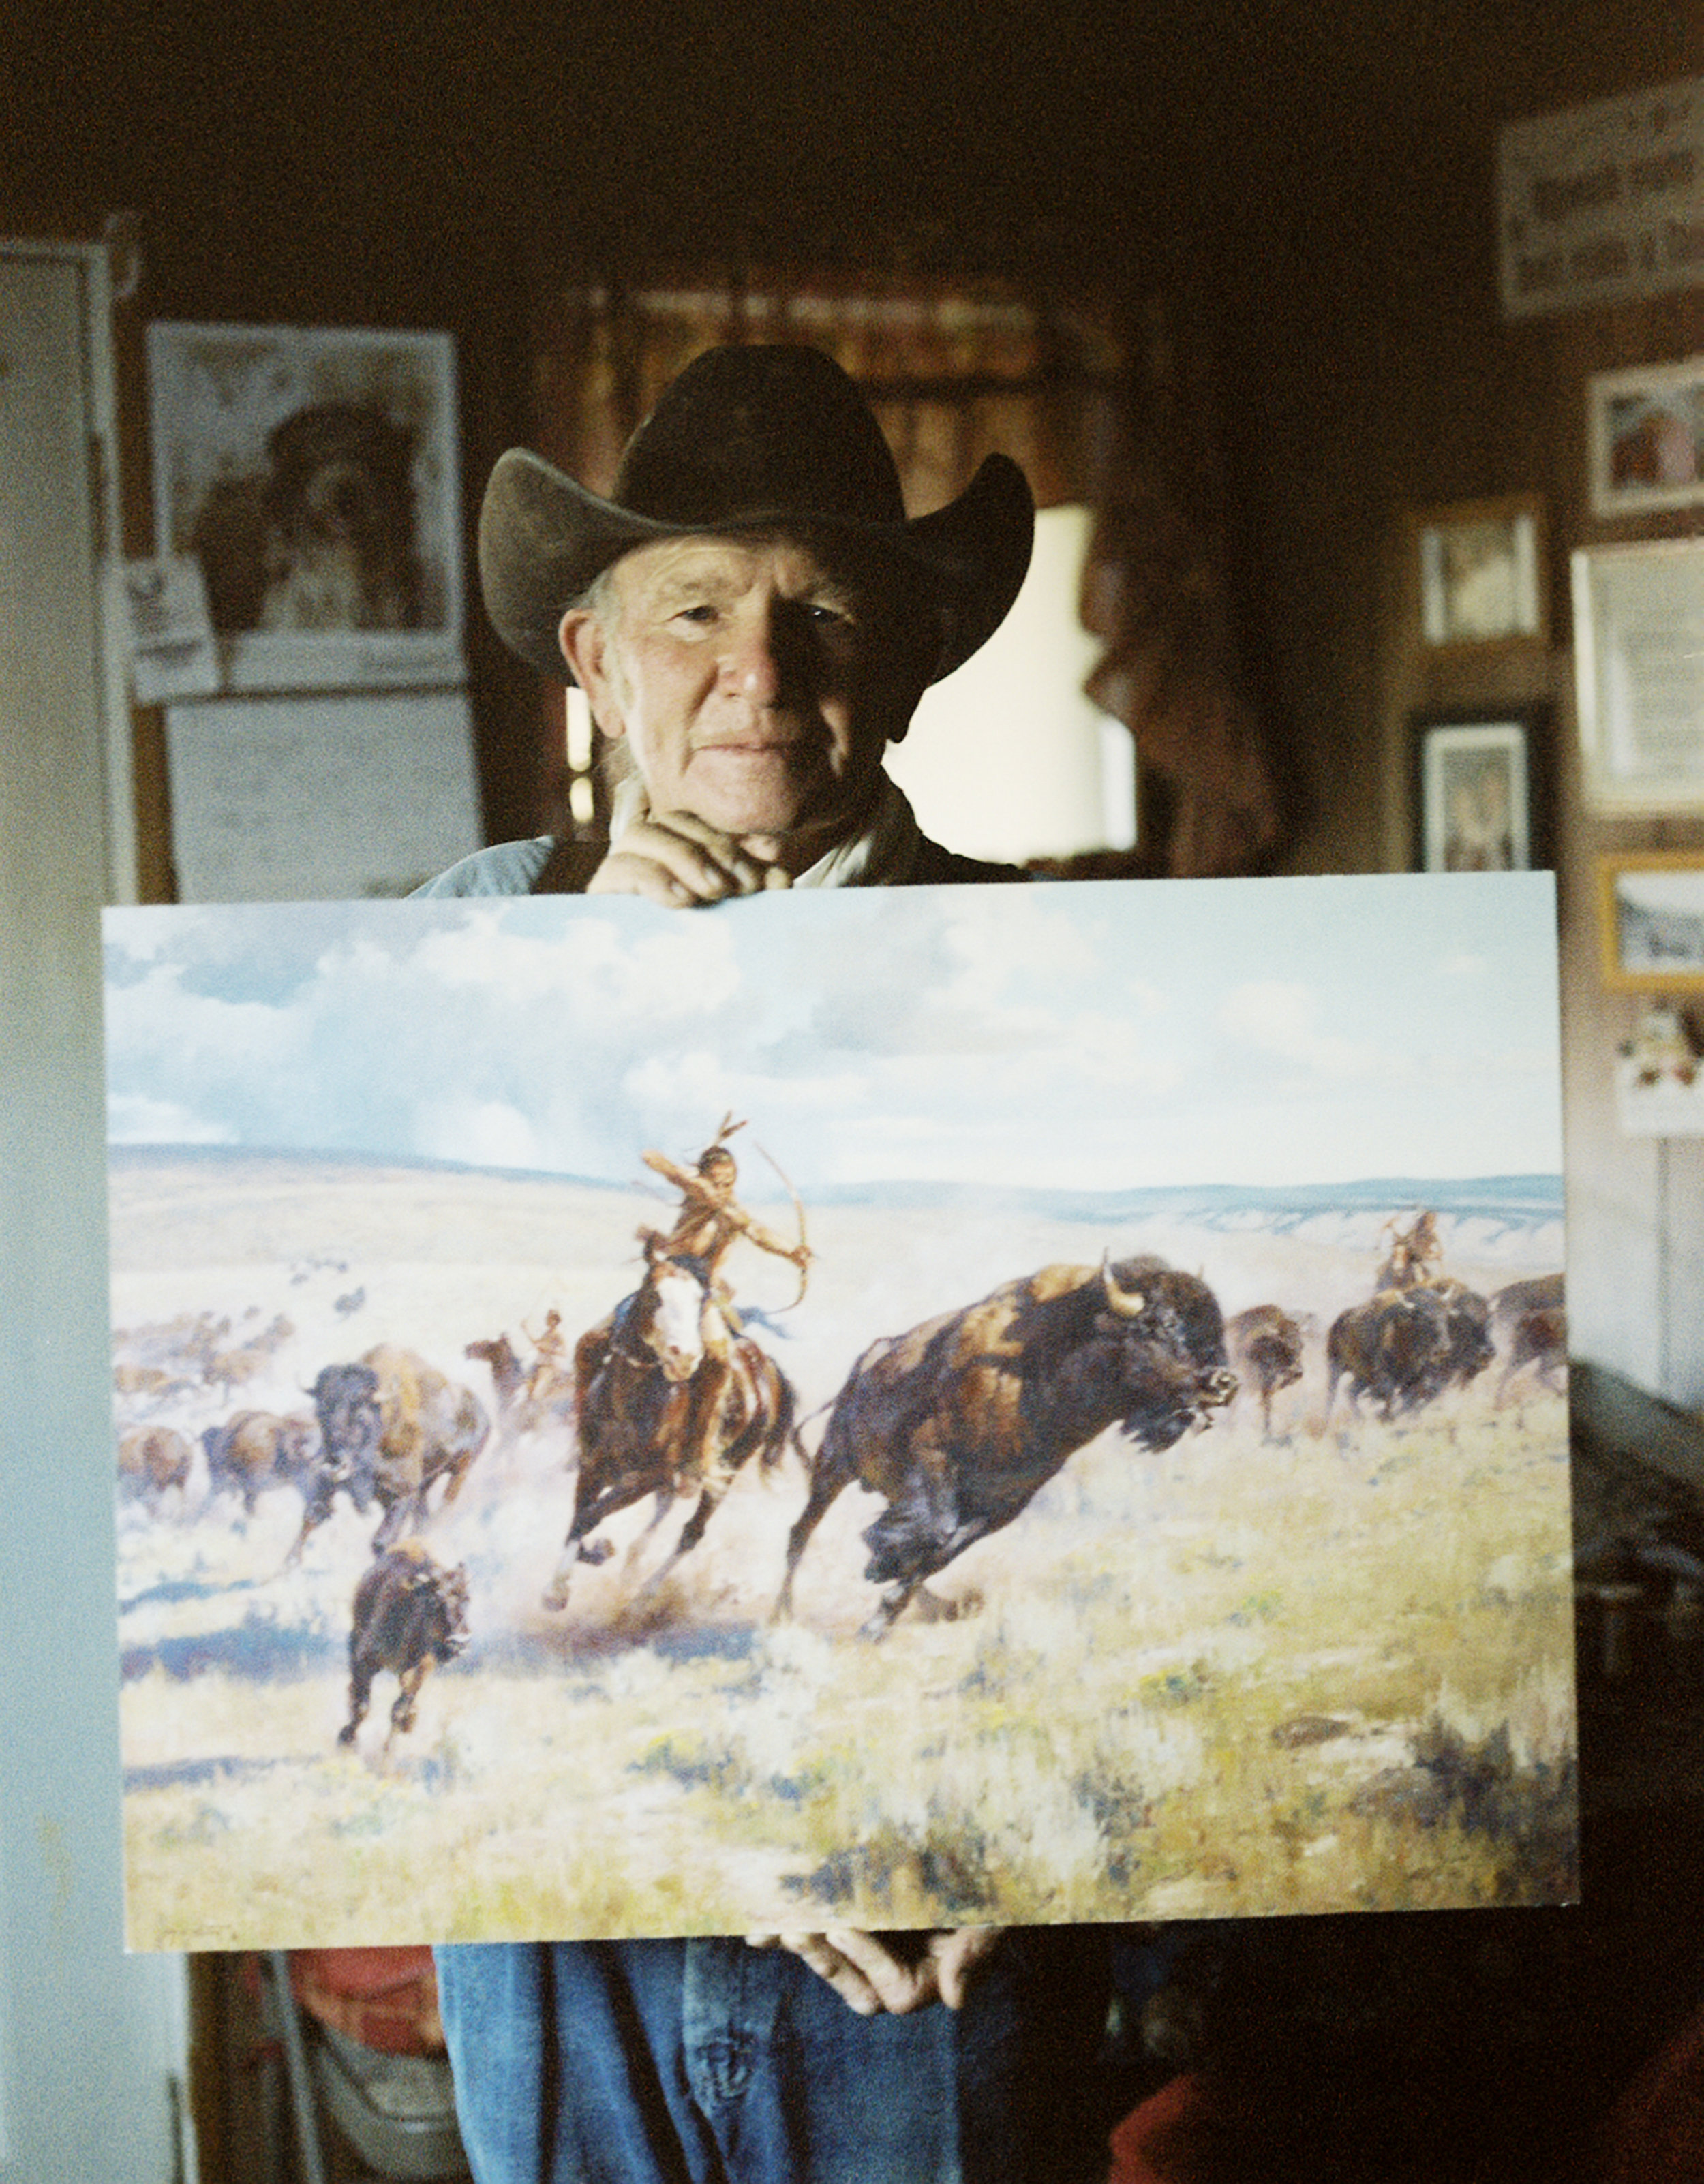 A rancher holding a painting of the wild west based on his horses. This painting won first place in the Utah State Fair many years prior. Elberta, population 256.